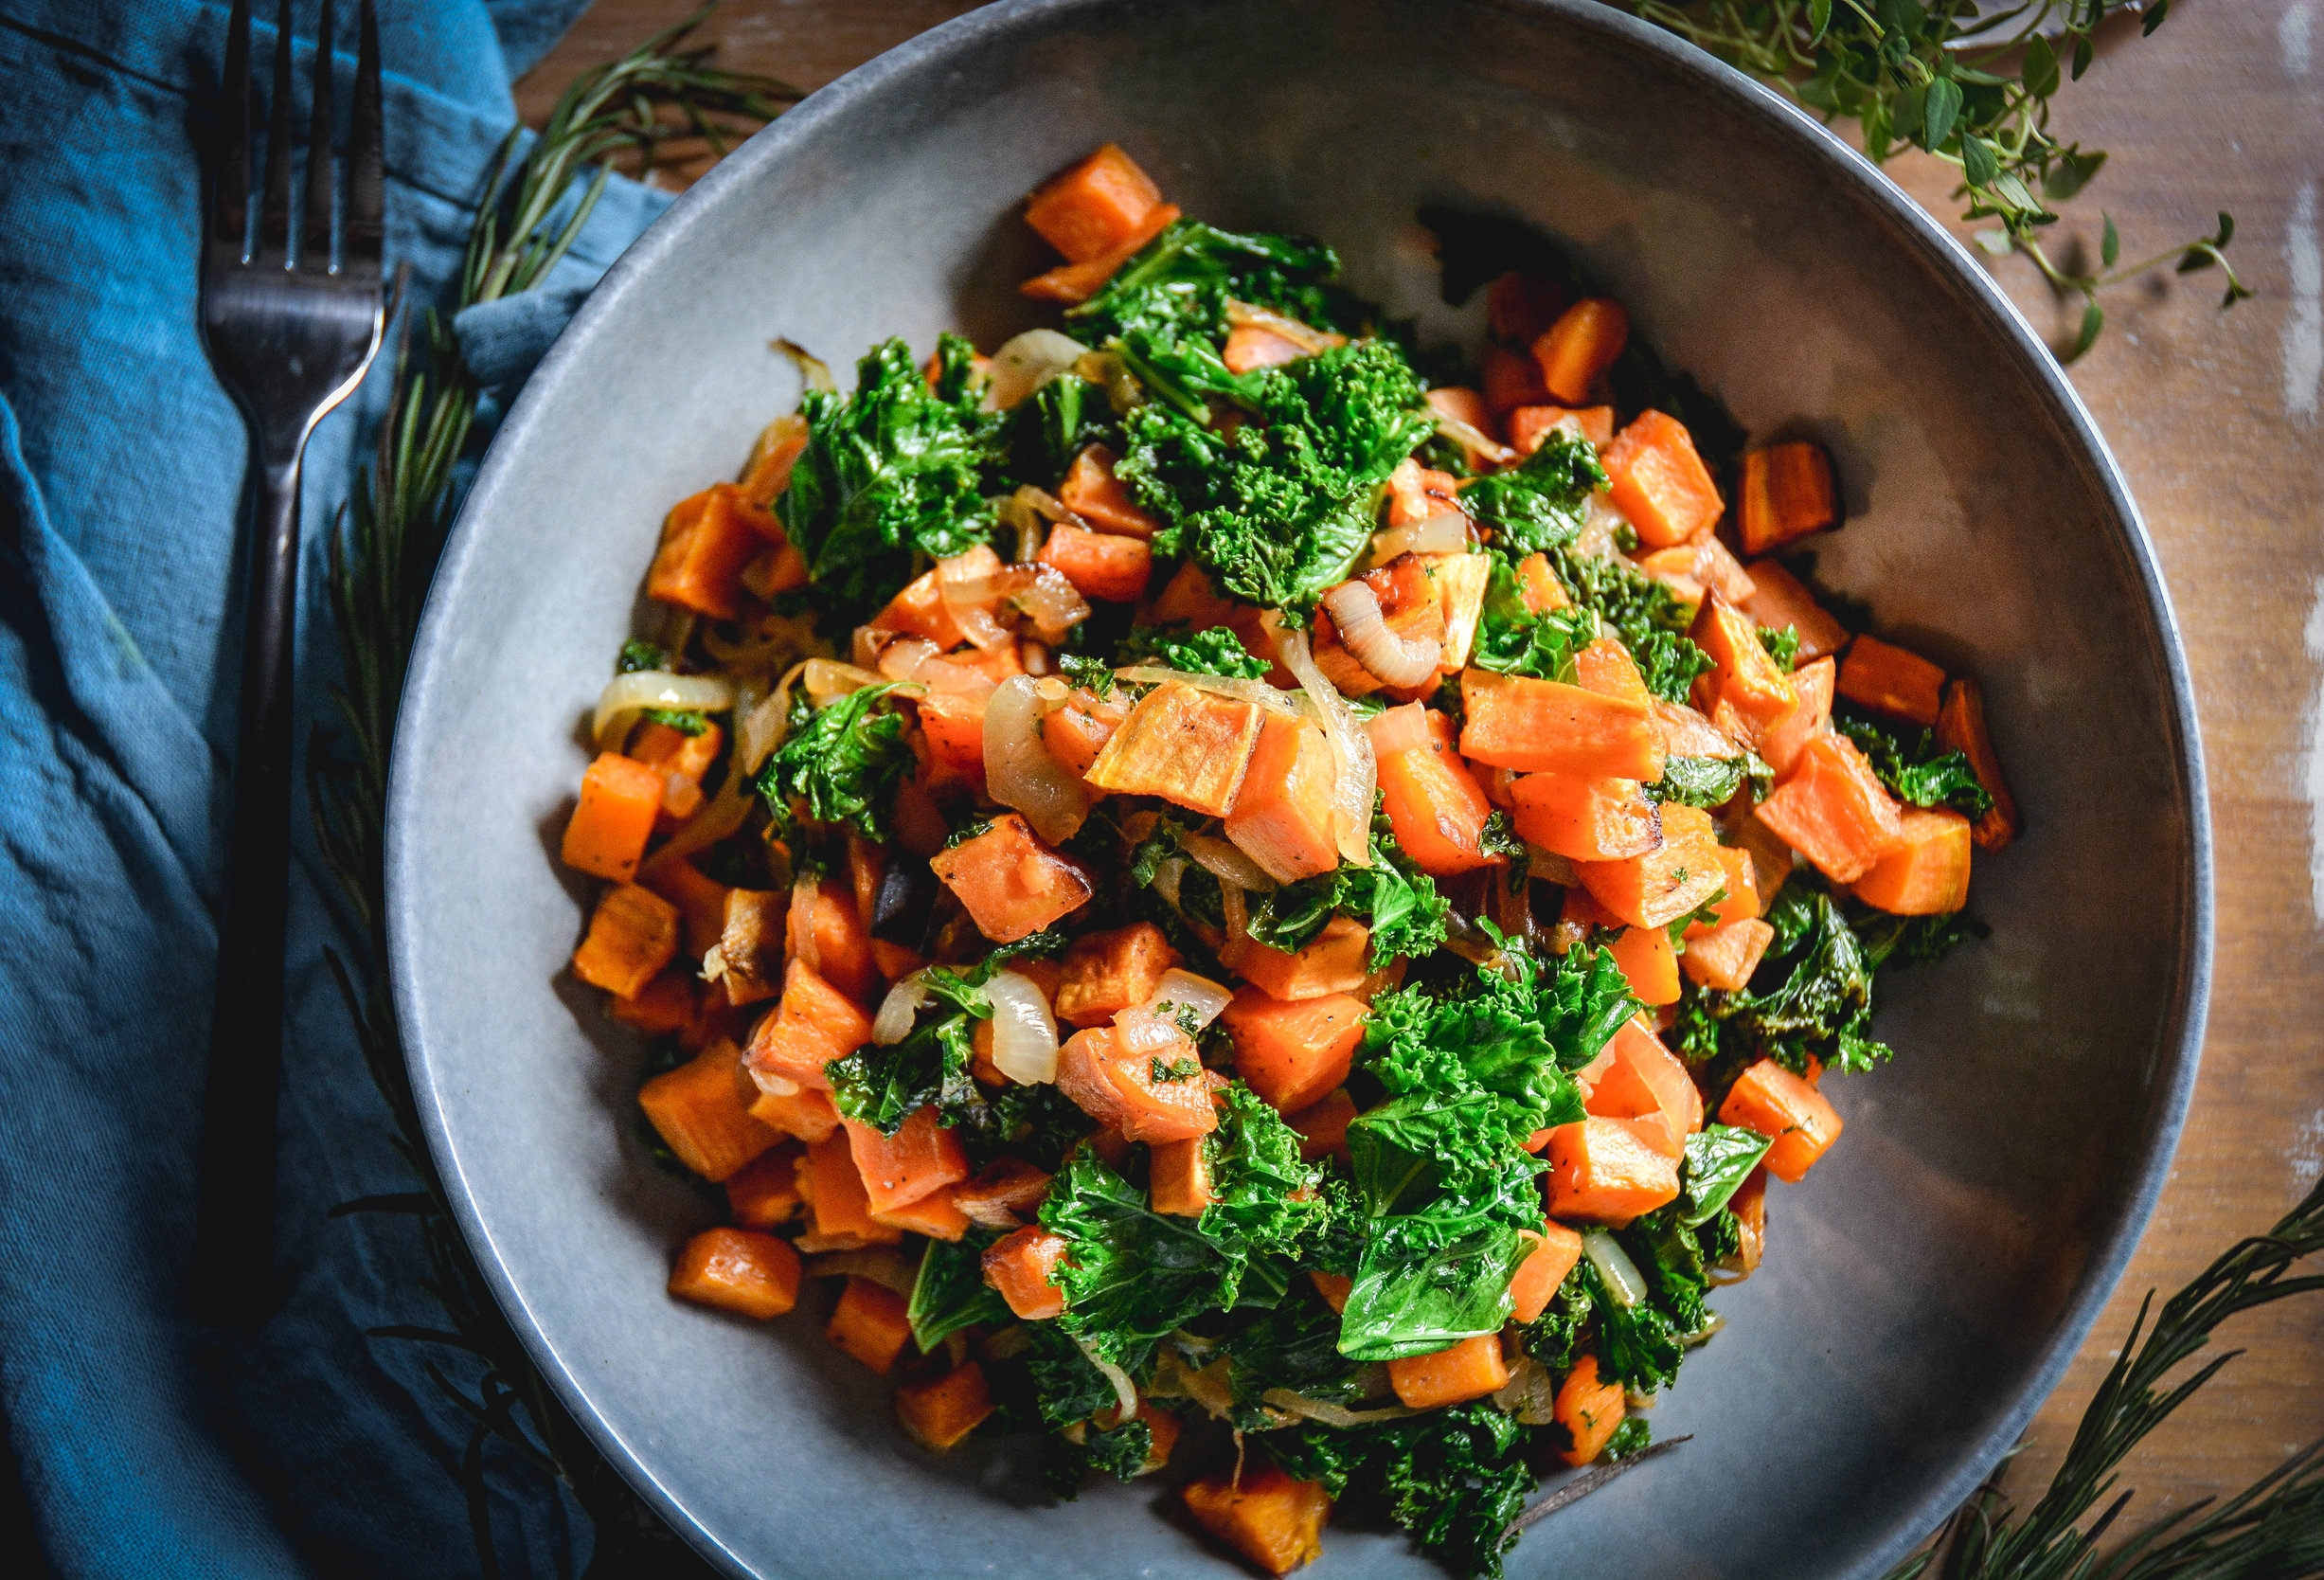 sweet potatoes in bowl with kale, blue napkin and fork